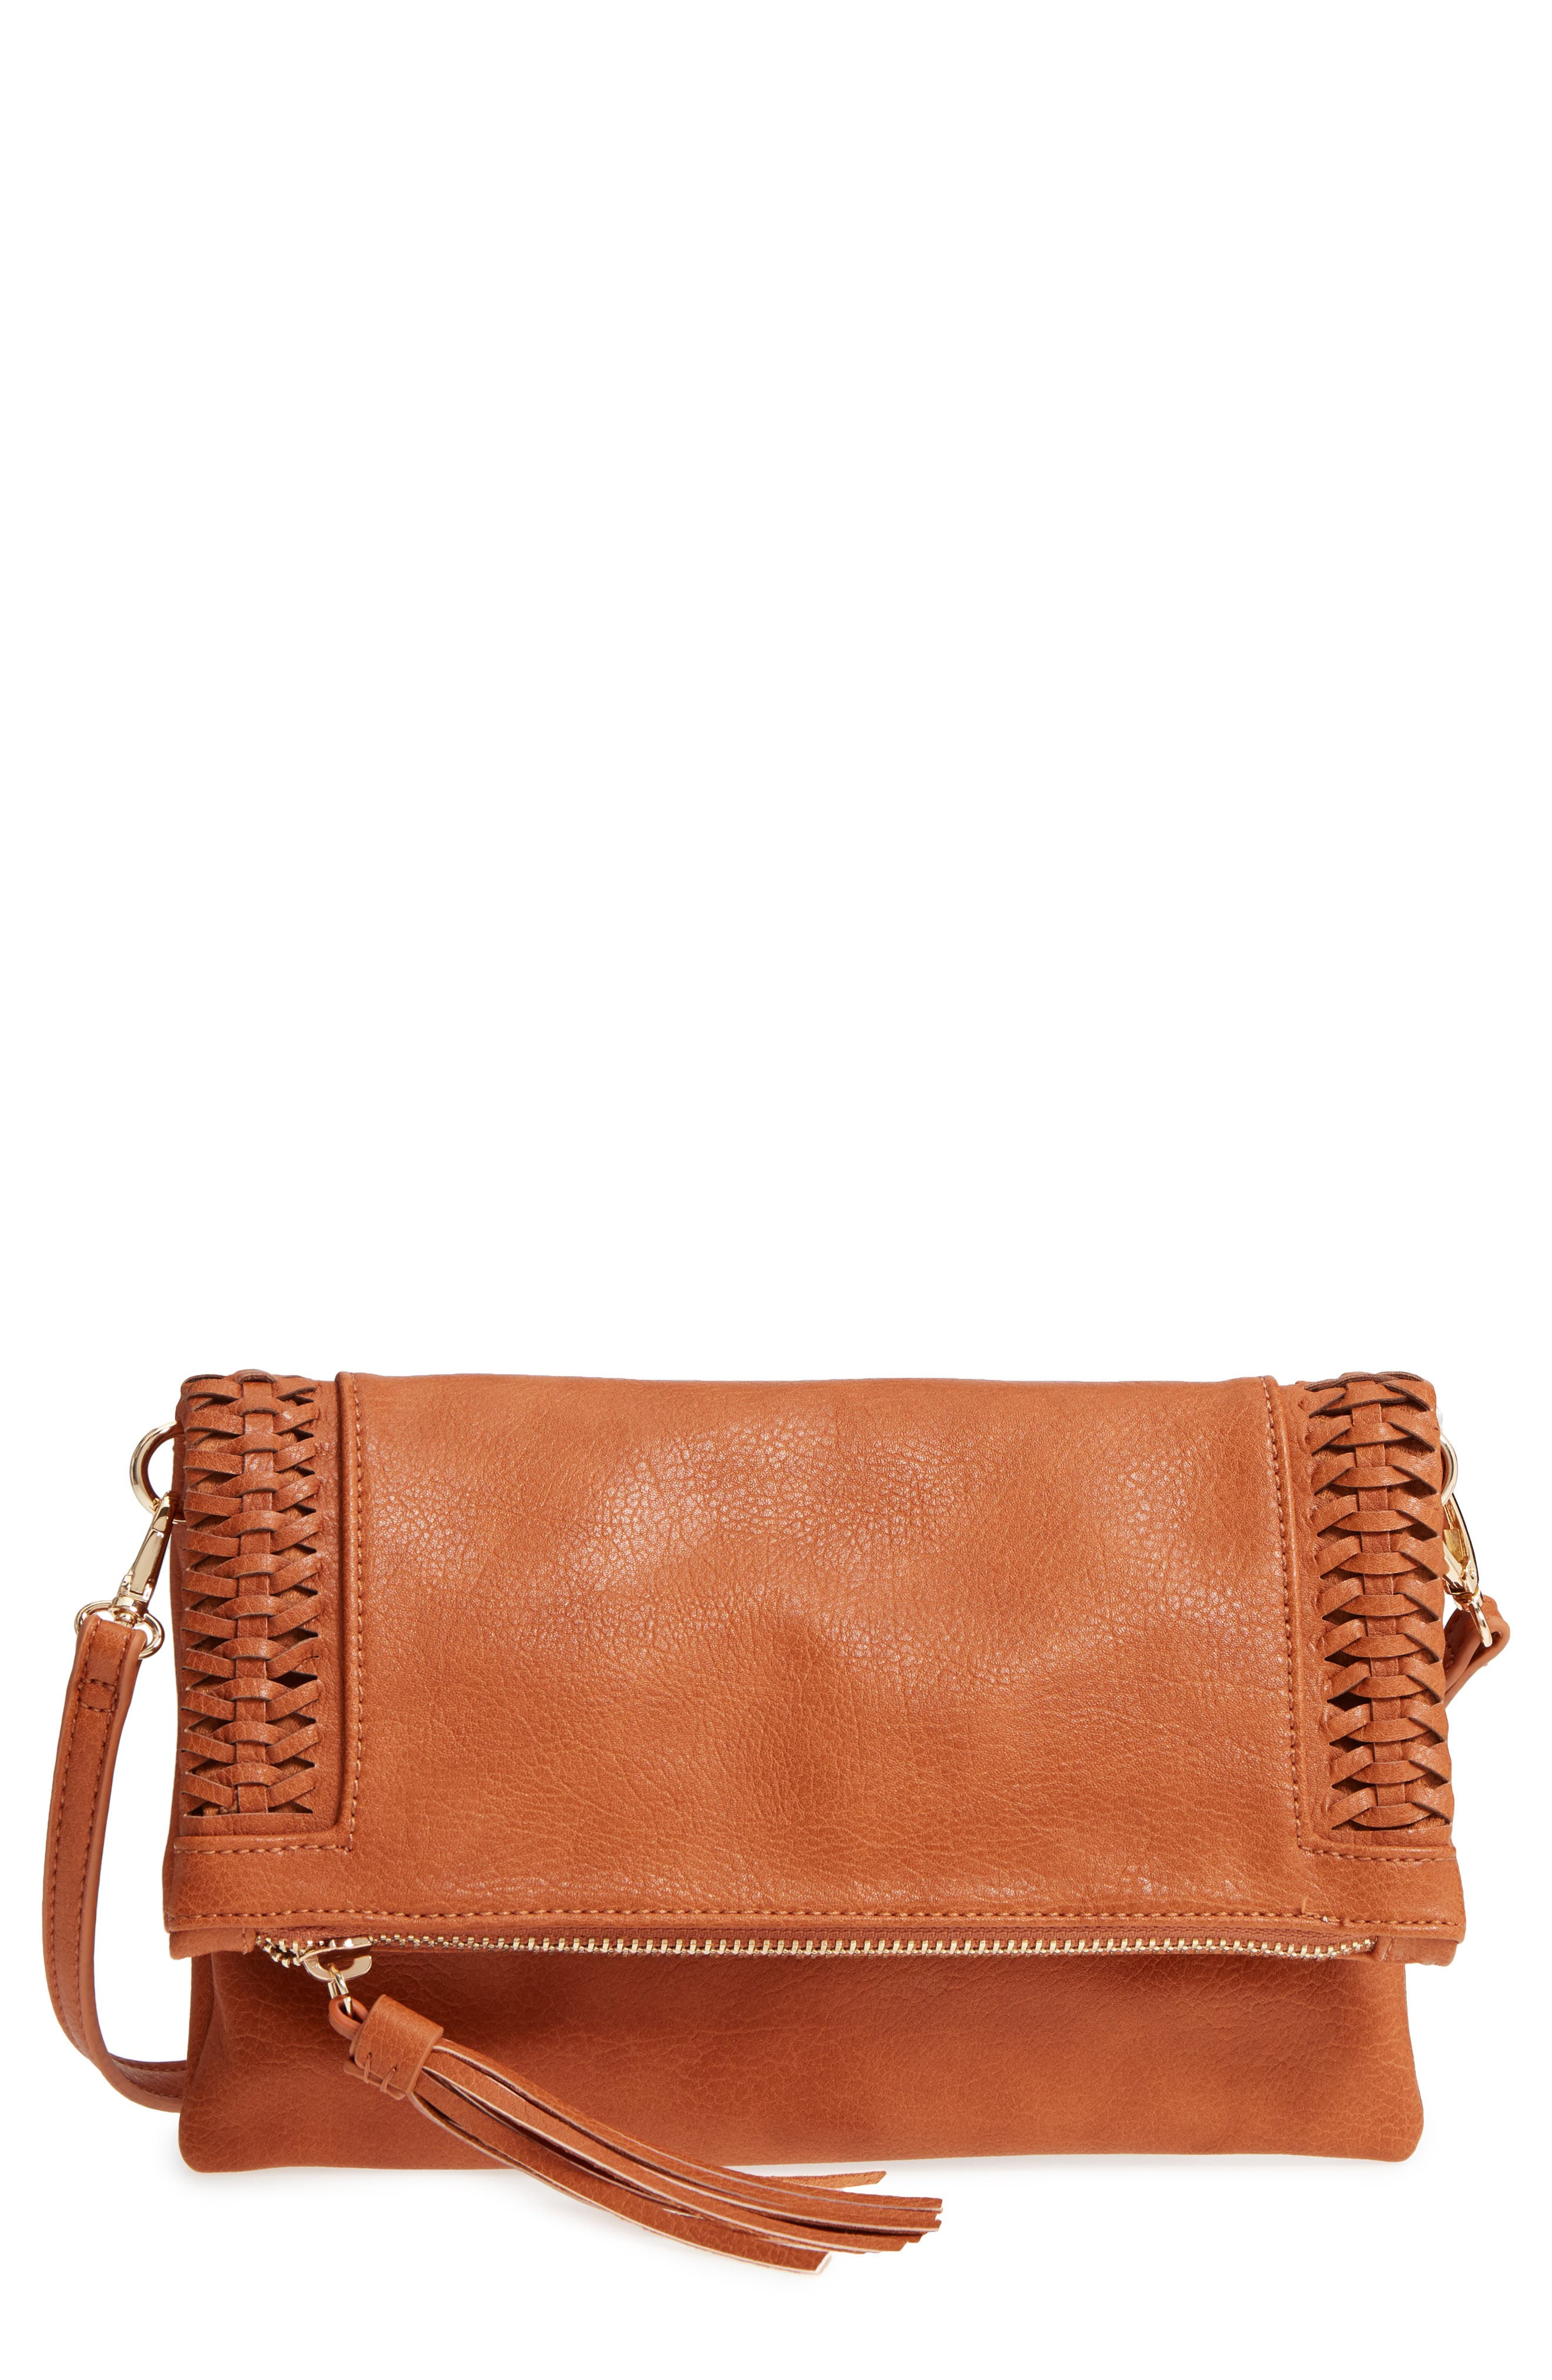 Tara Whipstitched Faux Leather Clutch,                             Main thumbnail 1, color,                             230